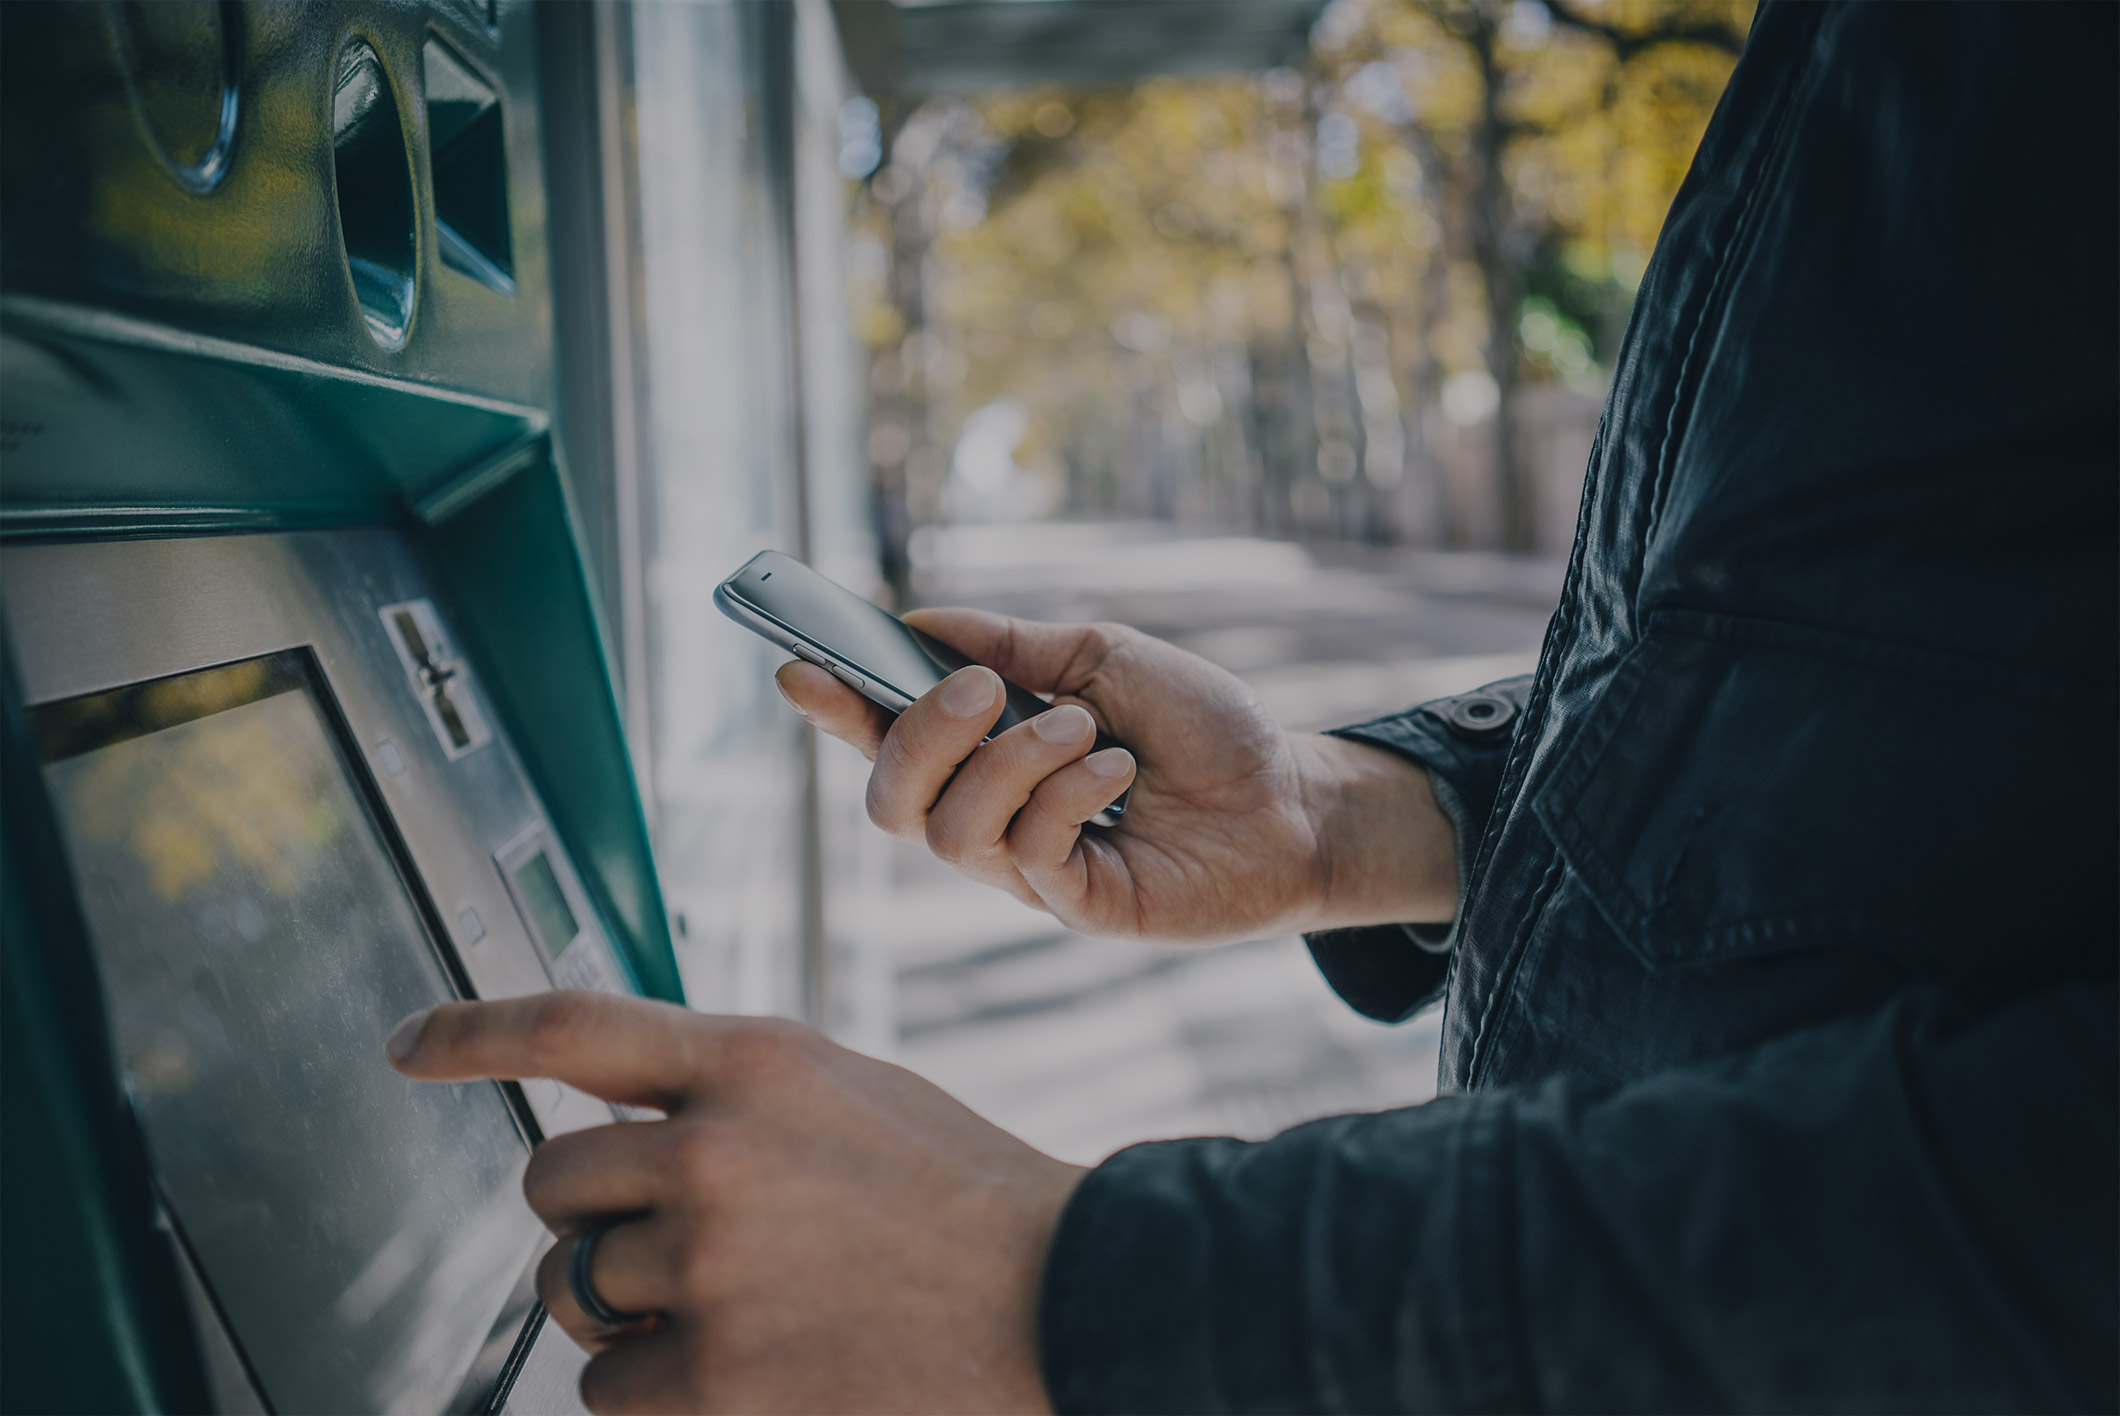 Man using an ATM and a cell phone